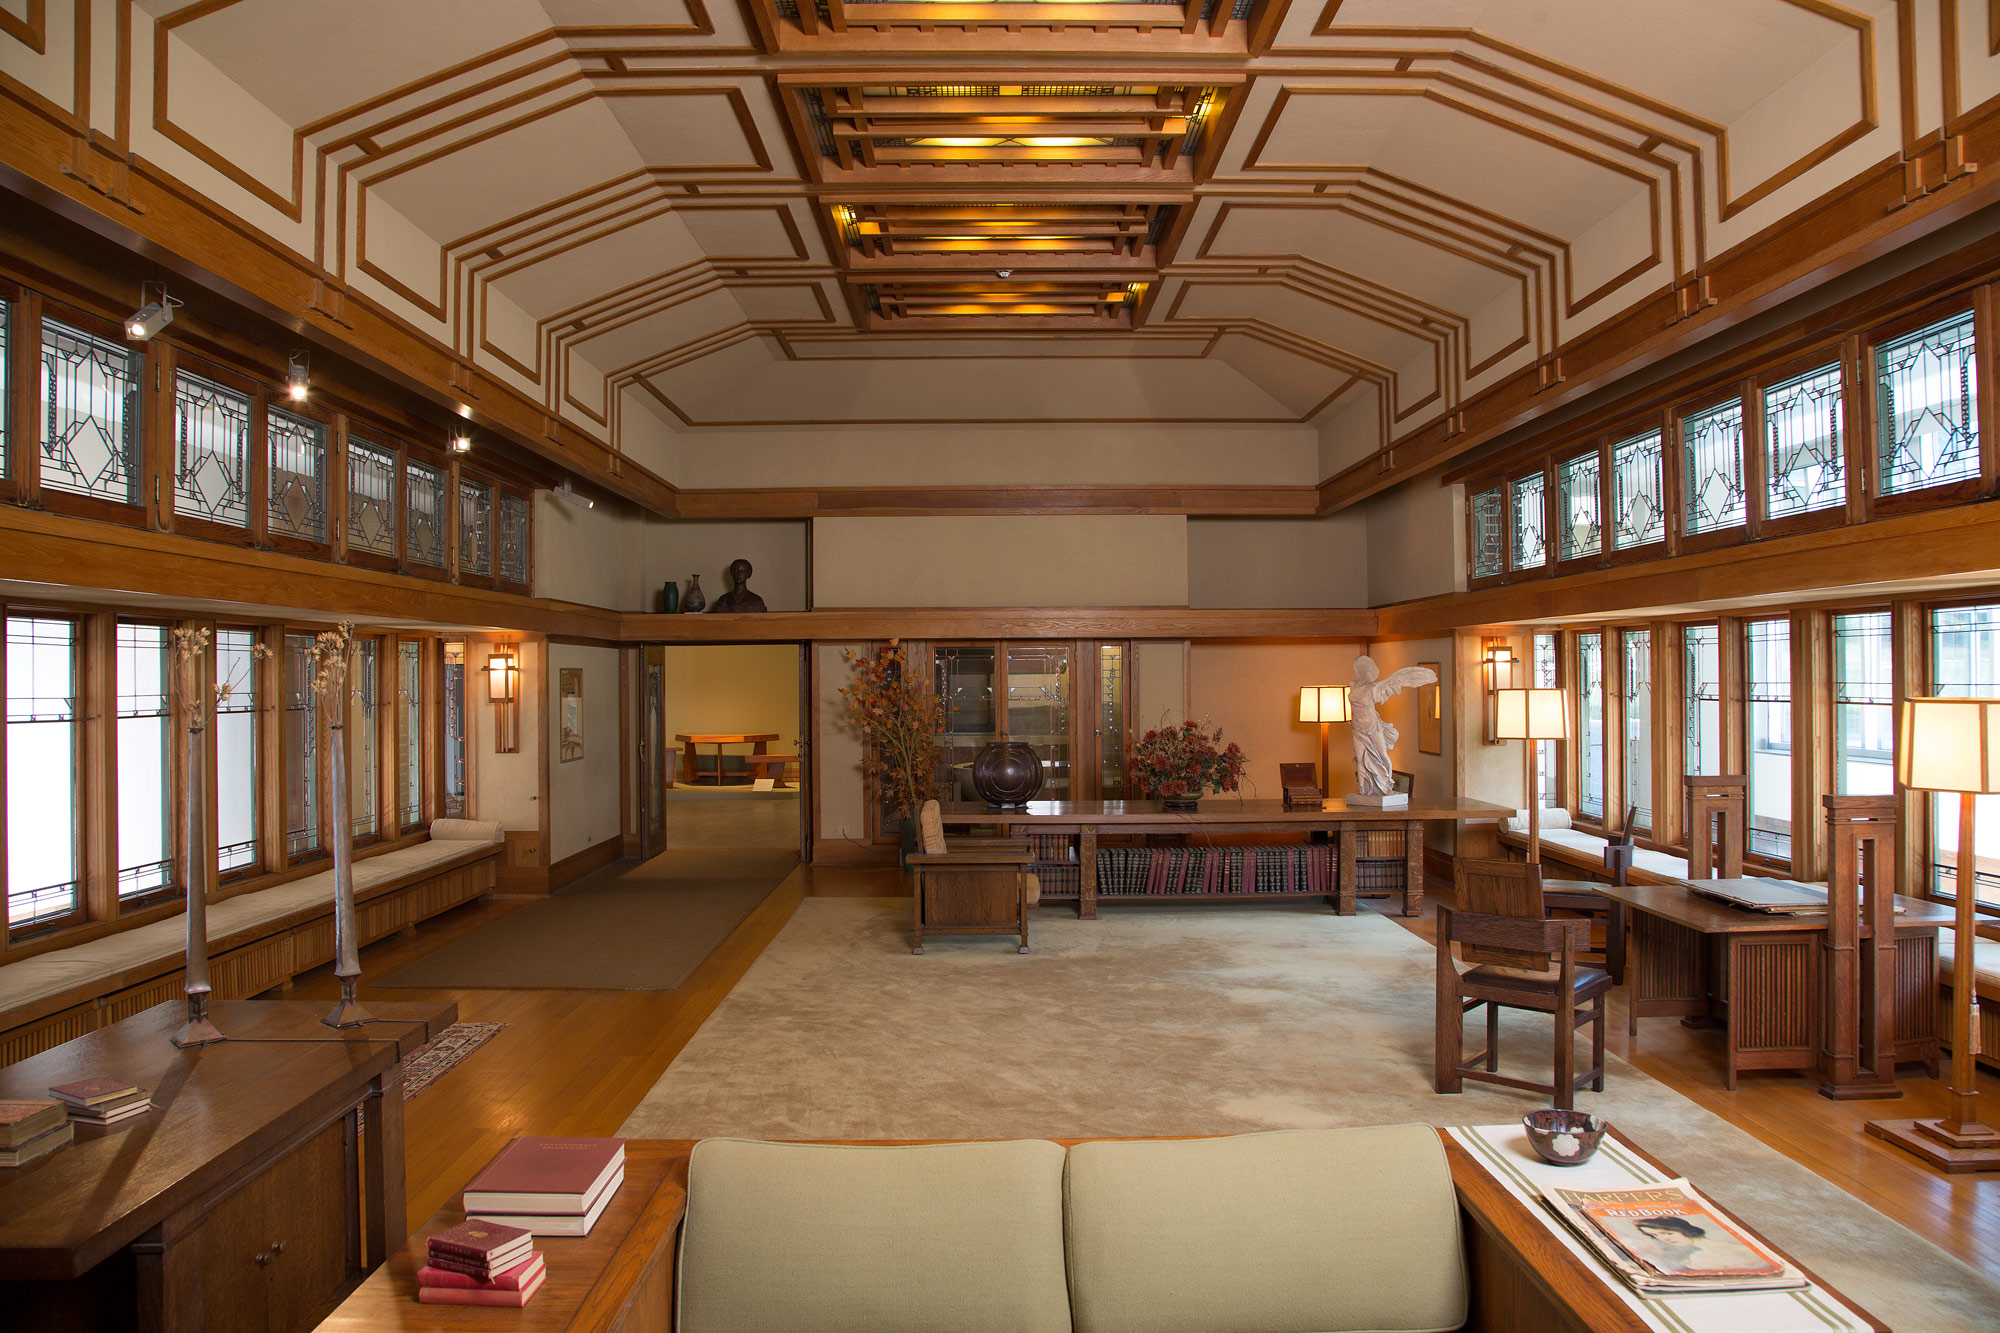 Frank Lloyd Wright Living Room From The Francis W Little House Windows And Paneling